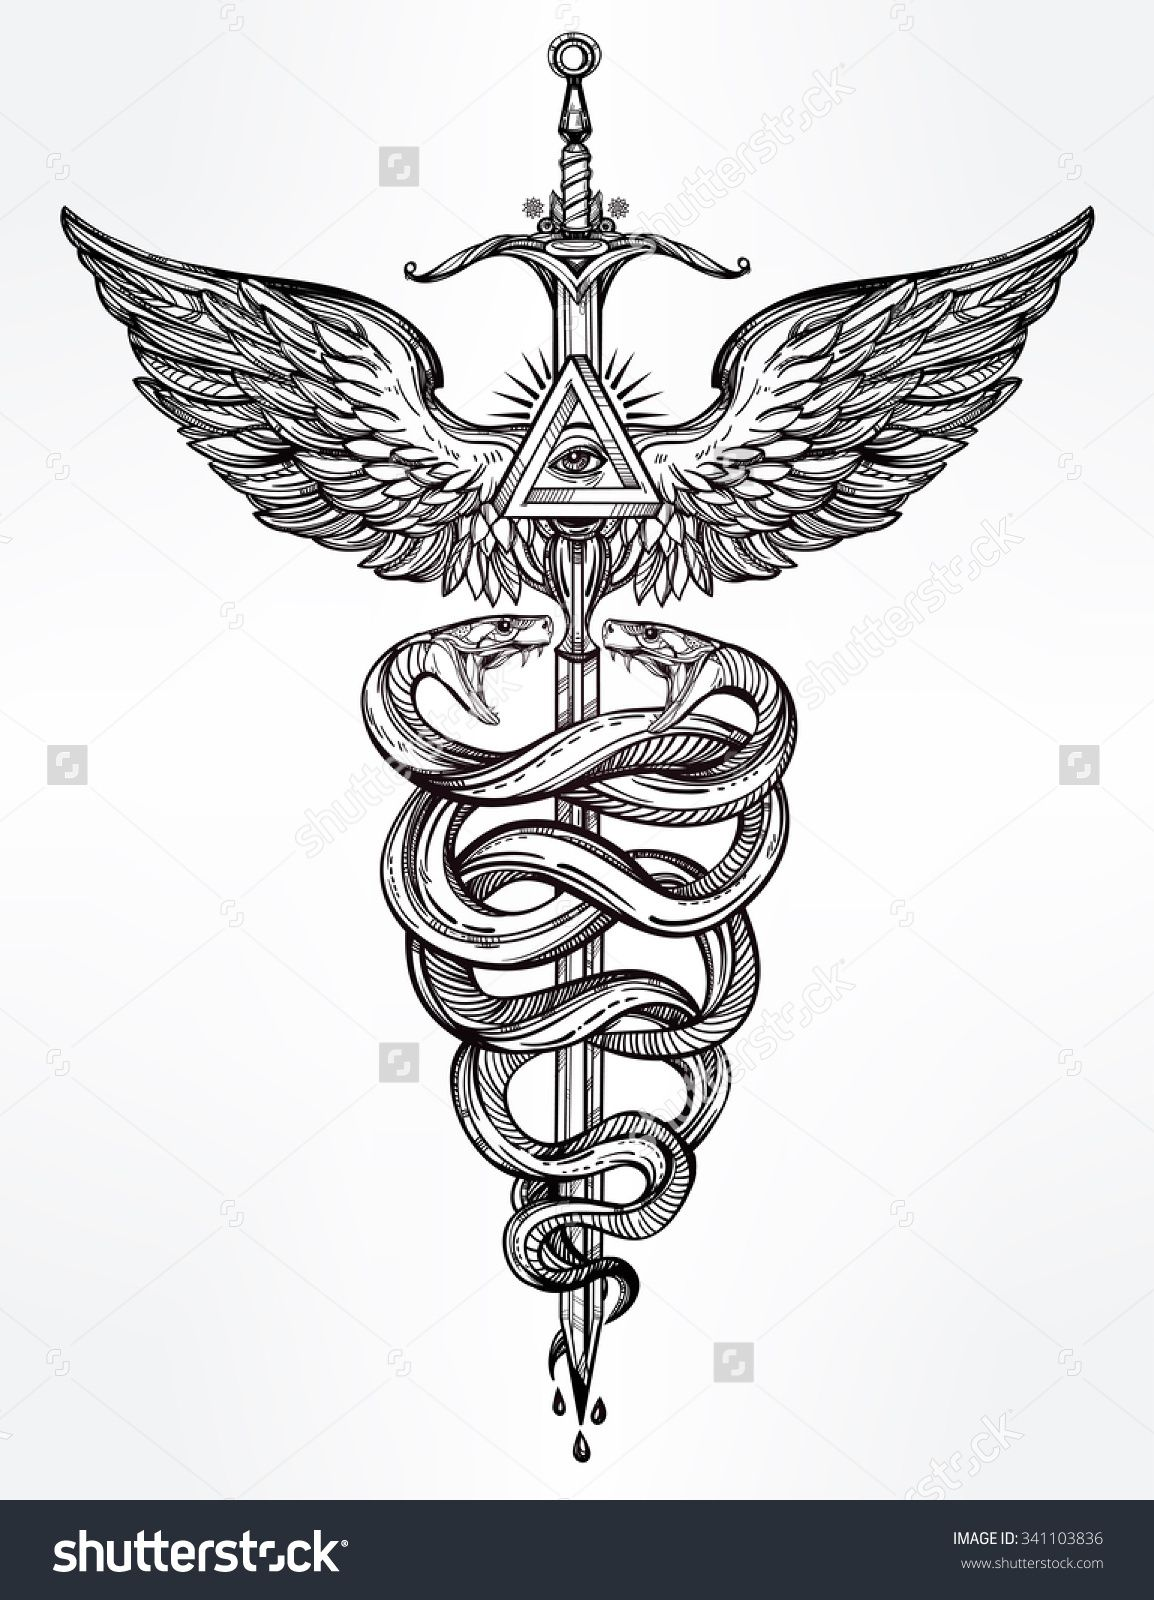 Caduceus symbol of god mercury highly detailed snakes wrapped caduceus symbol of god mercury highly detailed snakes wrapped around winged staff hand buycottarizona Image collections